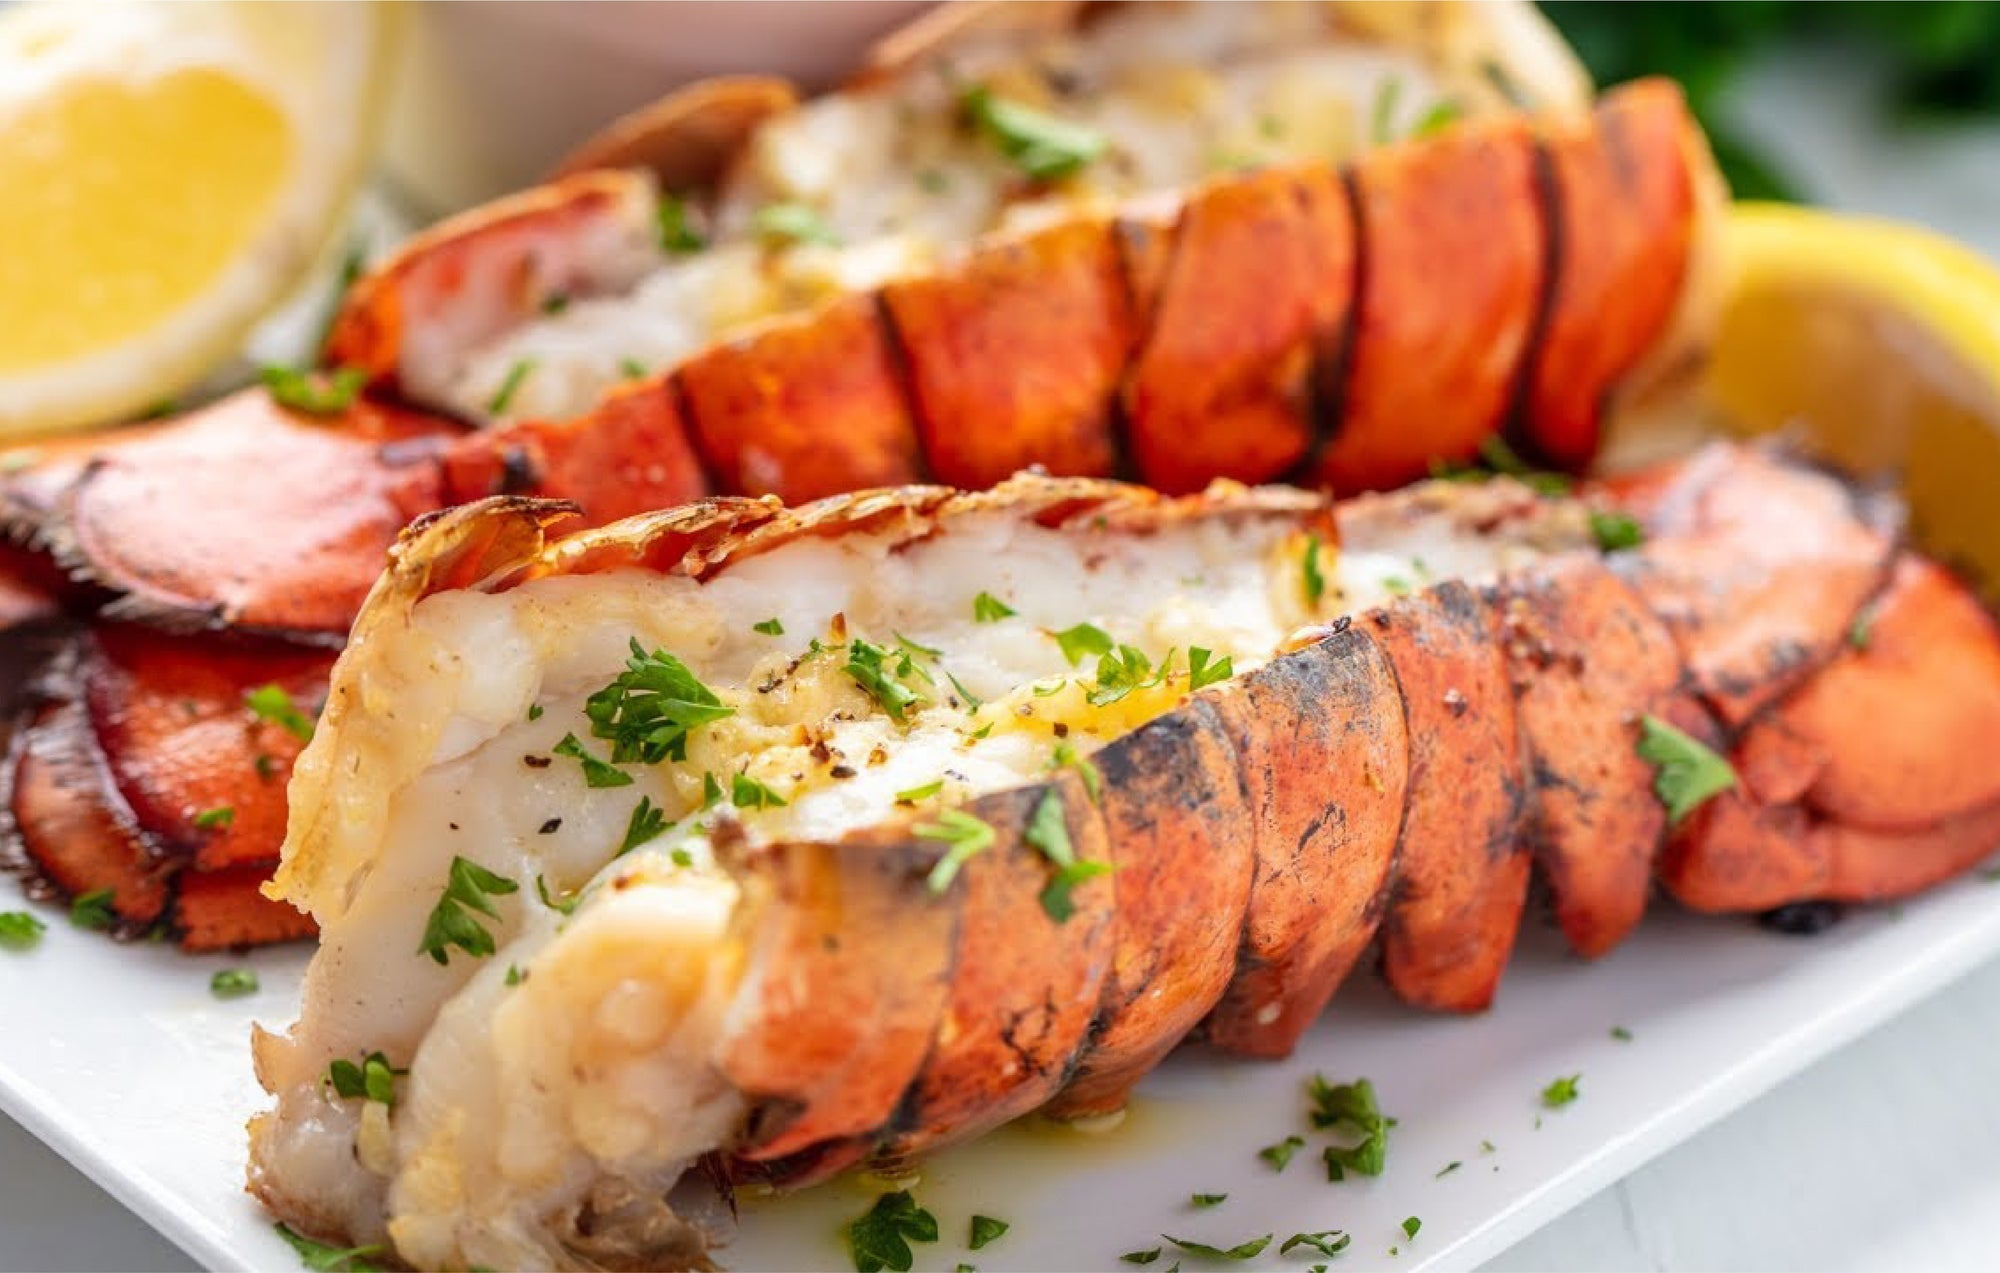 Baked Lobster ...mmm!